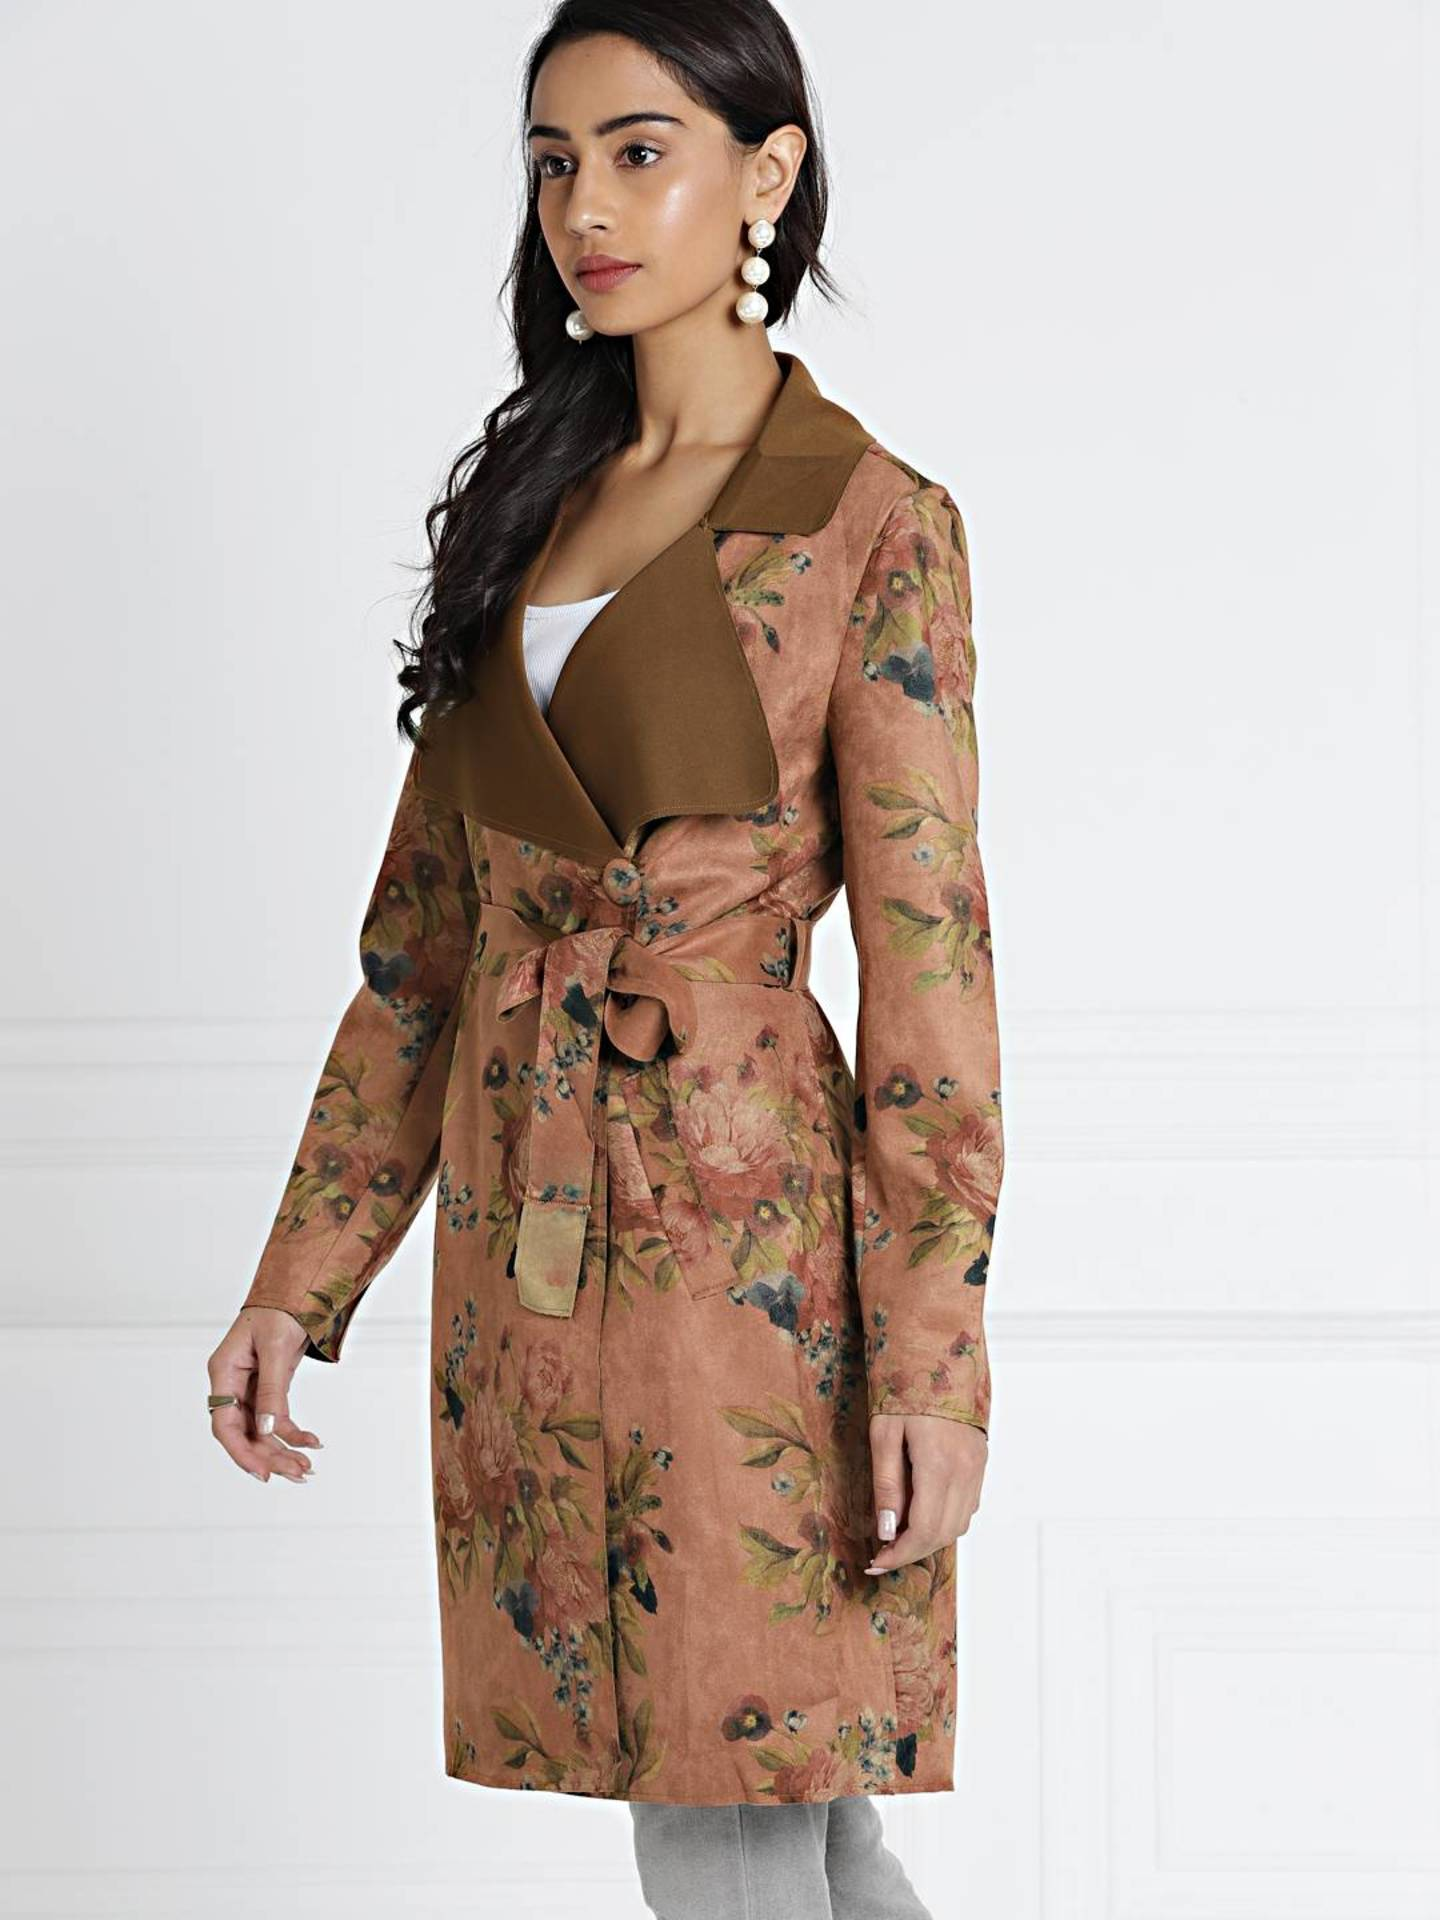 shopaholicpals - 3d79013b-79c4-4d2a-8861-d7f9115be7db1541162831137-all-about-you-Women-Brown-Printed-Tailored-Jacket-5661541162830896-3